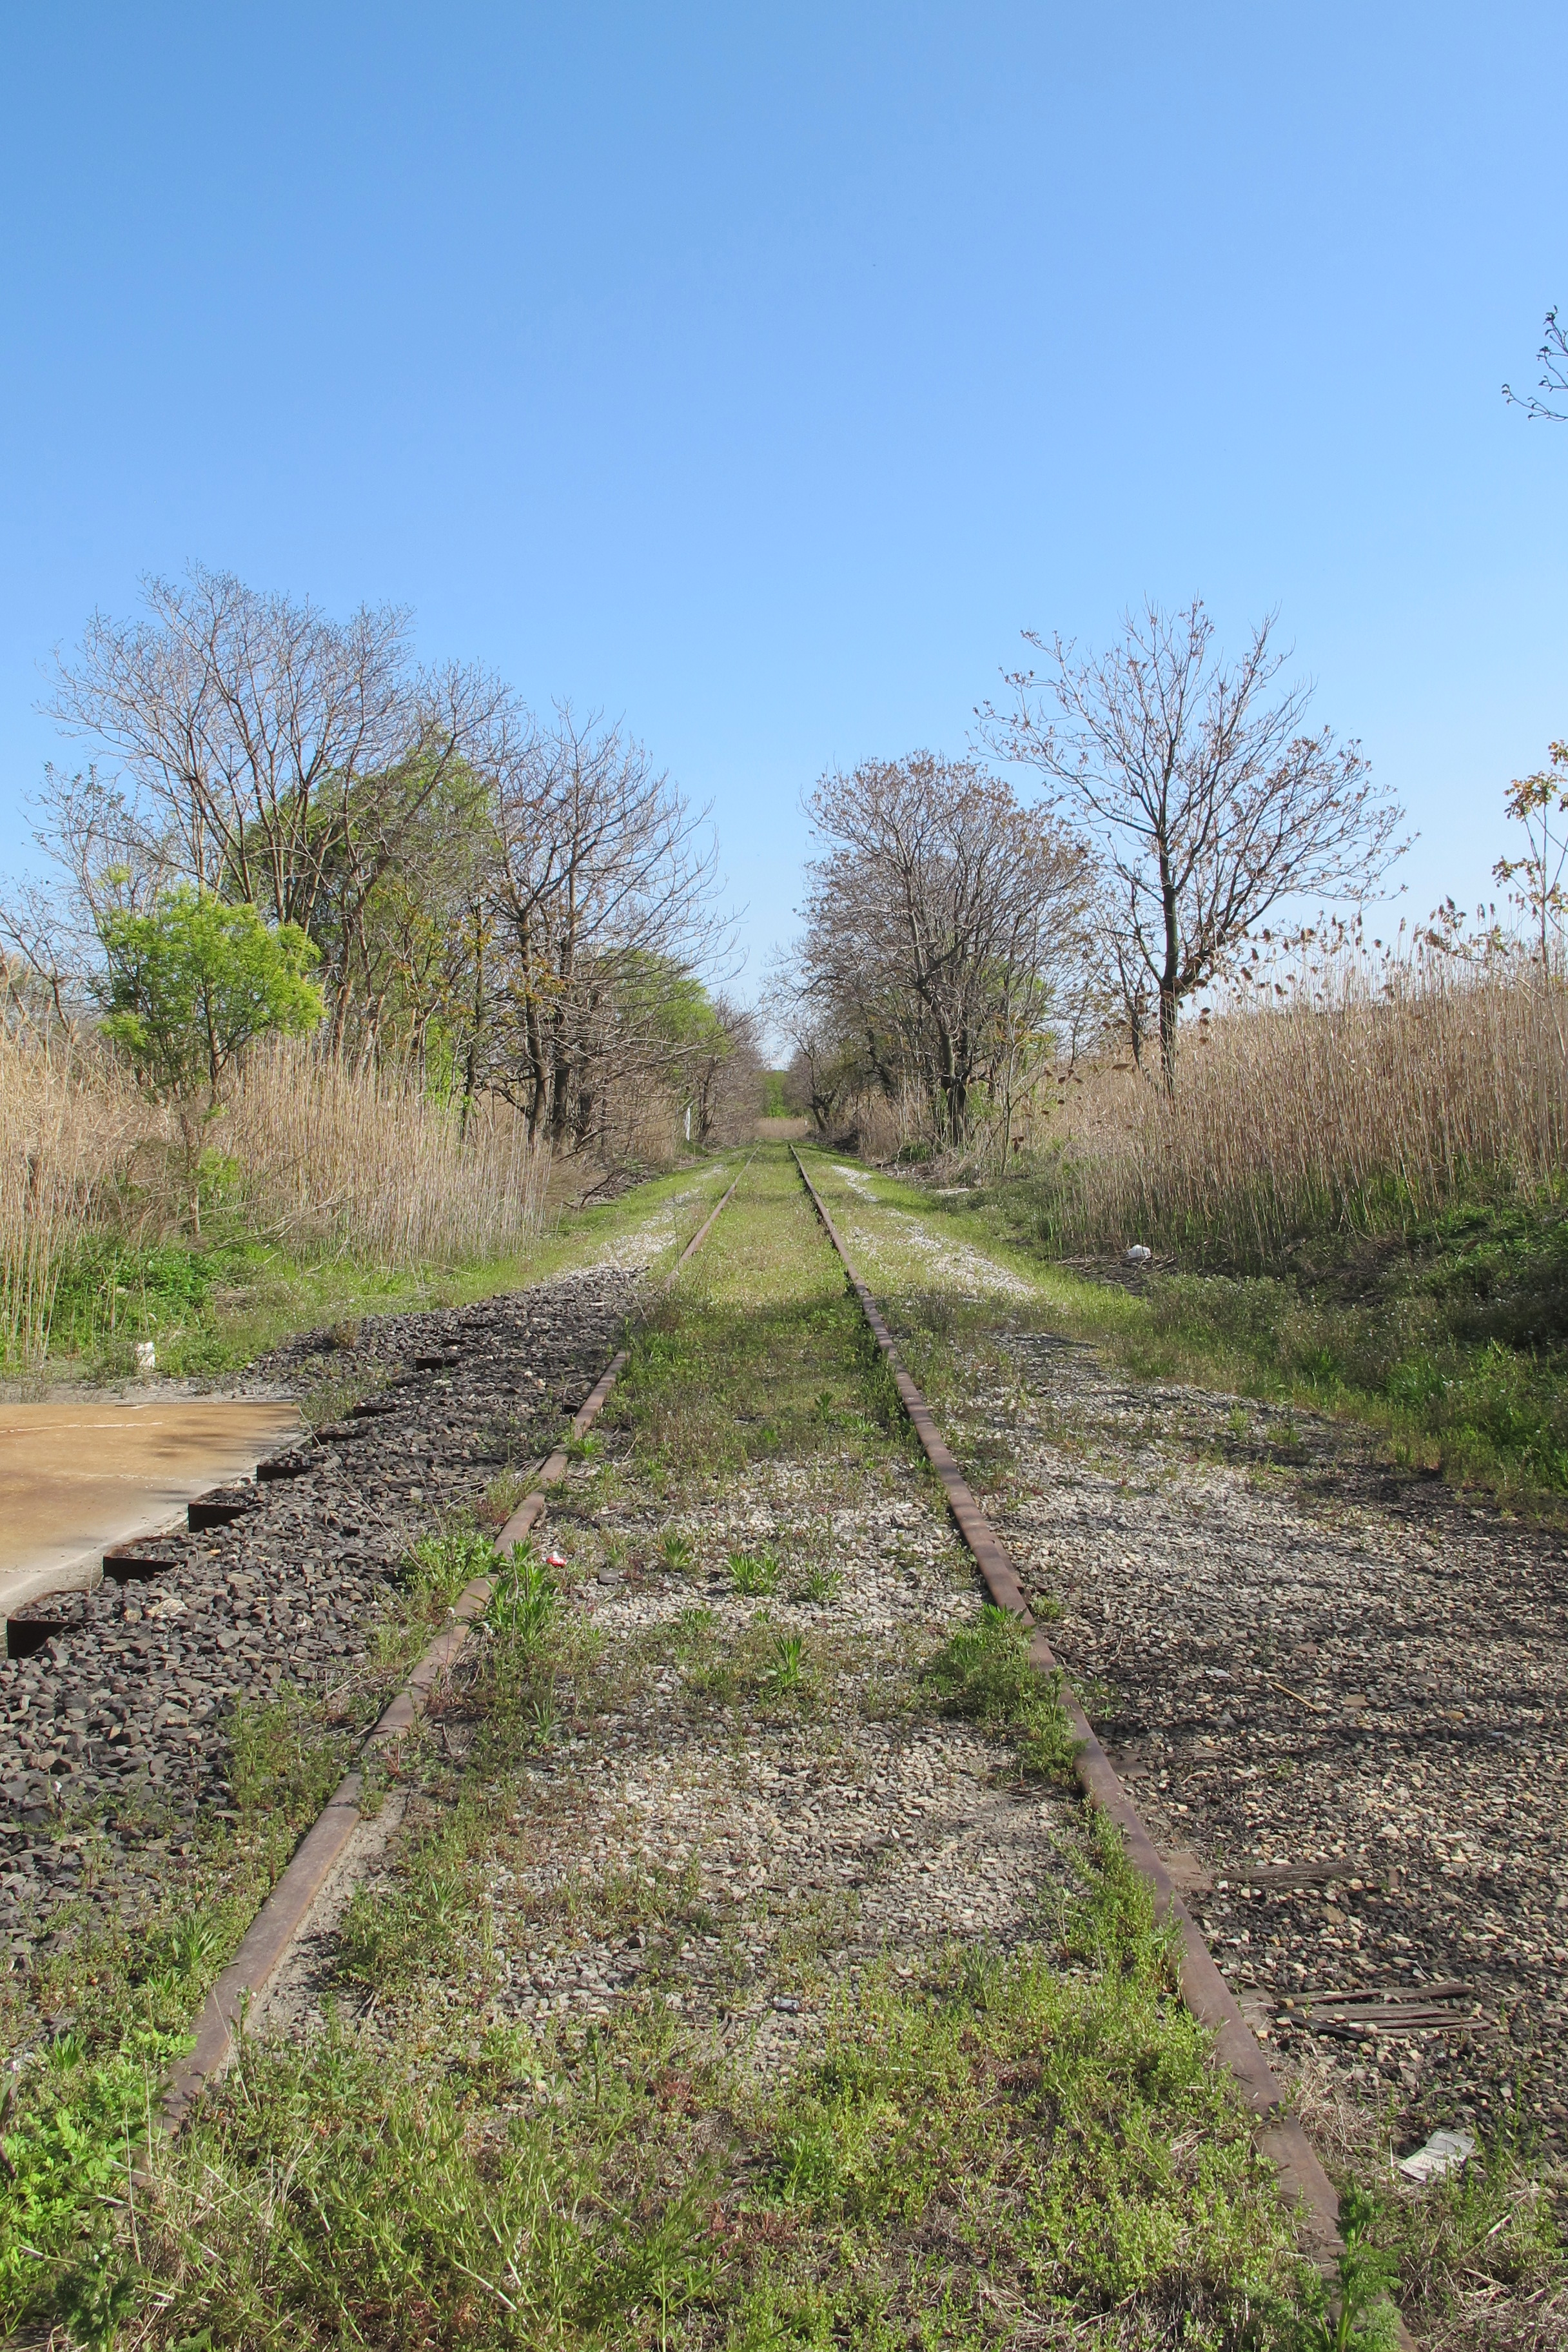 The 60th Street Rail Corridor is an abandoned right of way that could be creatively reused.